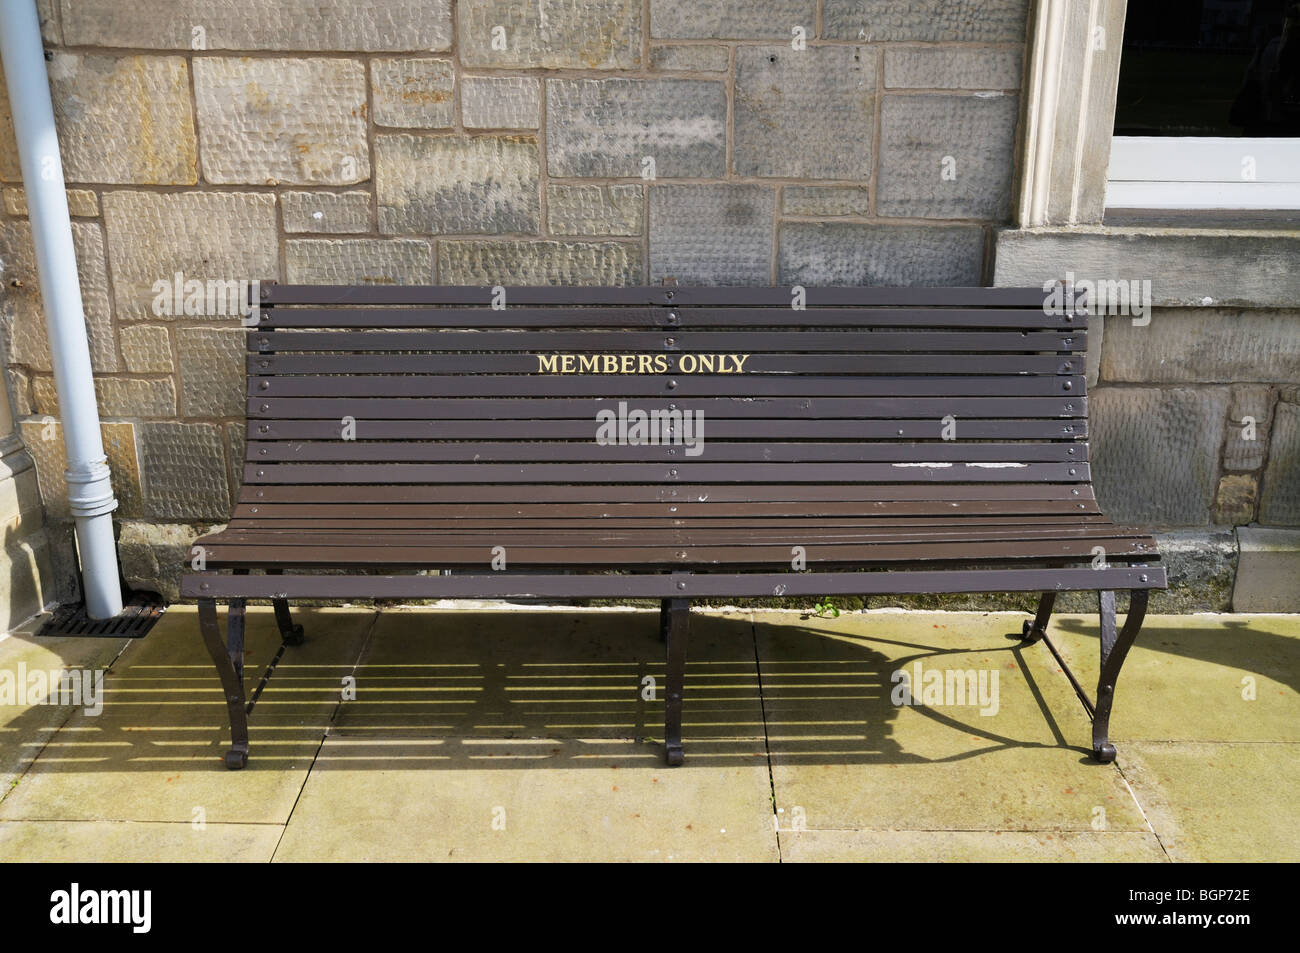 Bench marked 'members only' **EDITORIAL USE ONLY** - Stock Image